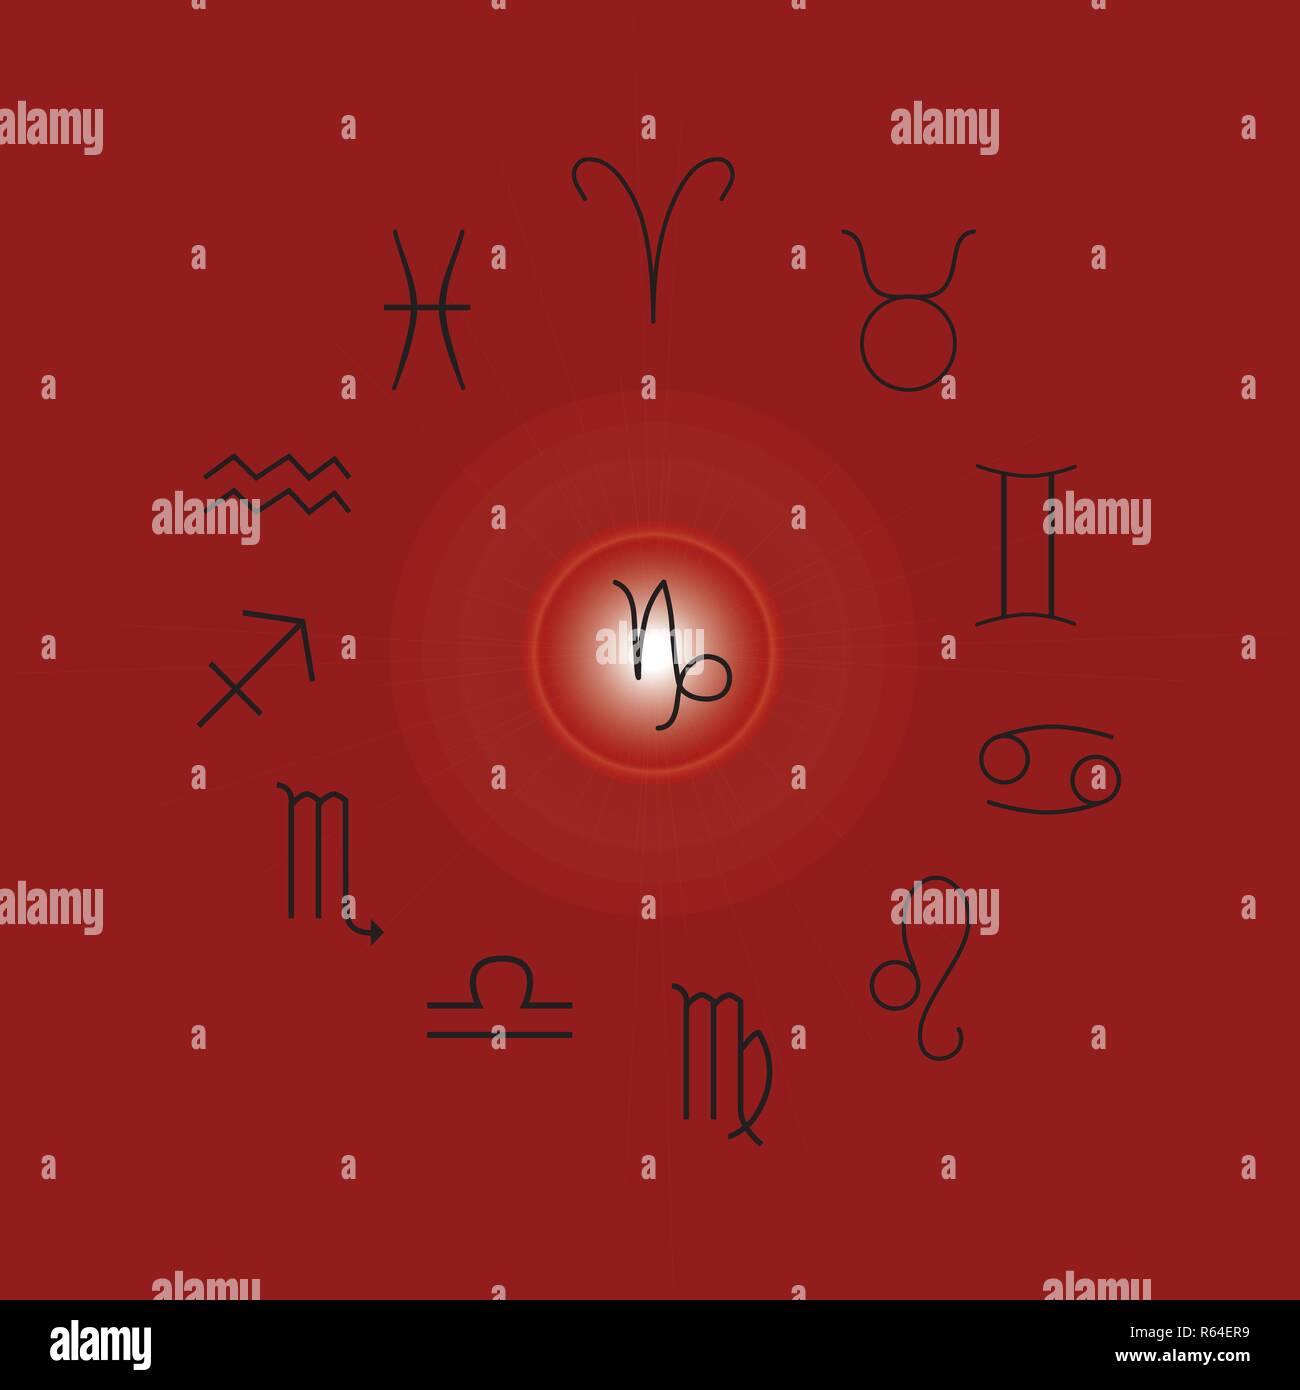 Love For Astrology Stock Photos & Love For Astrology Stock